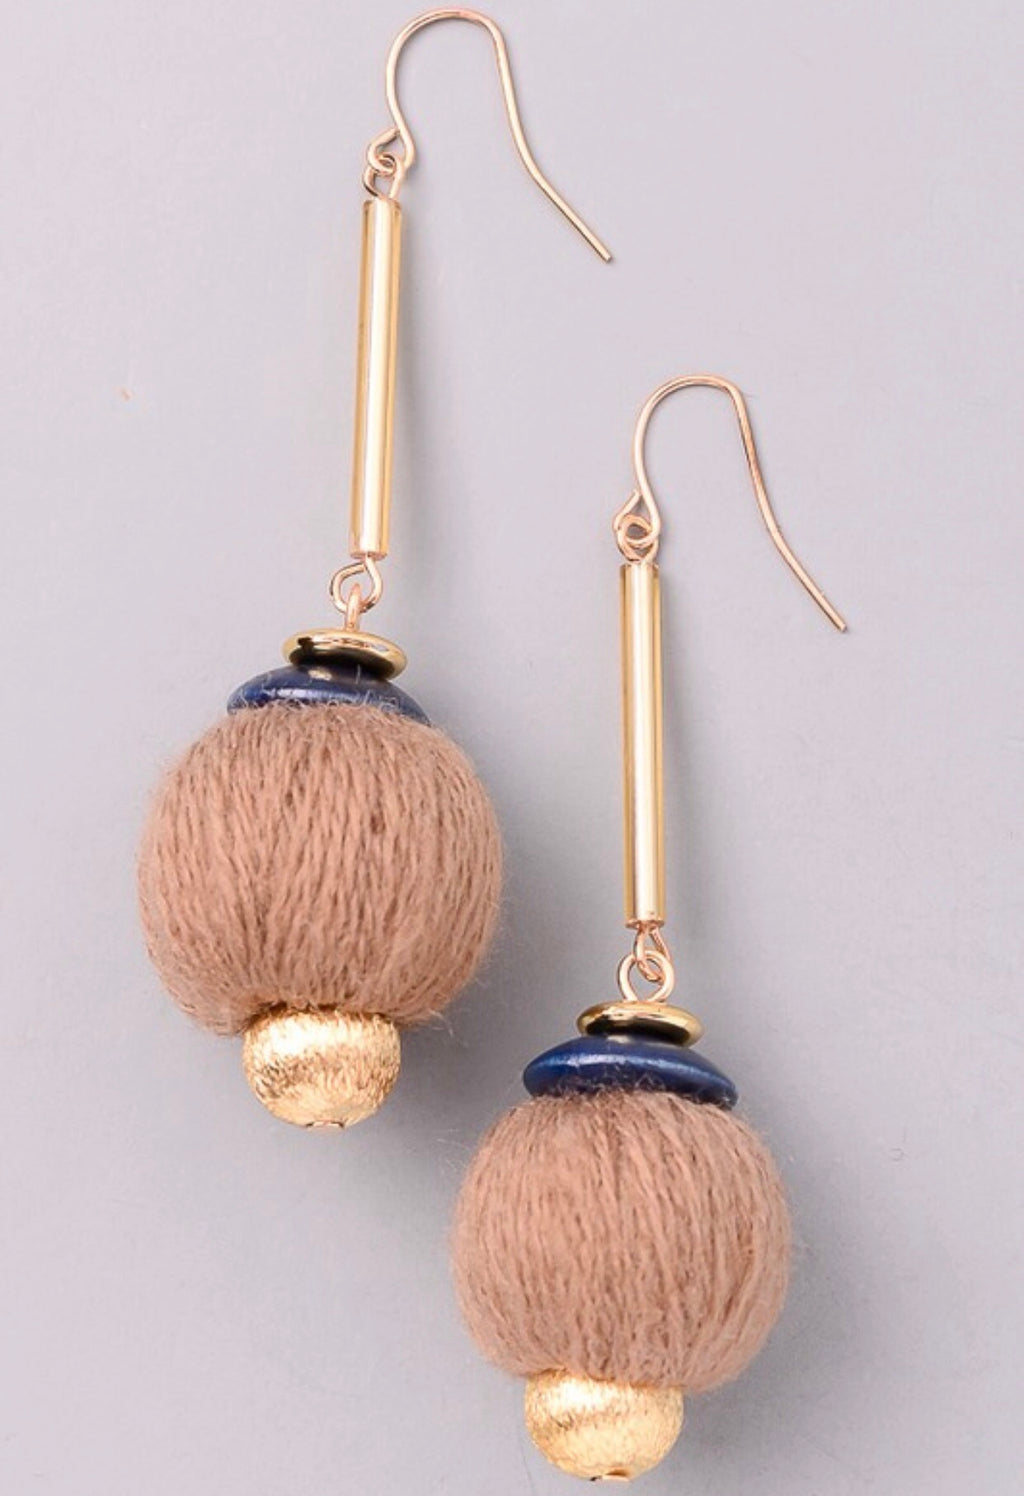 Yarn Ball Earrings